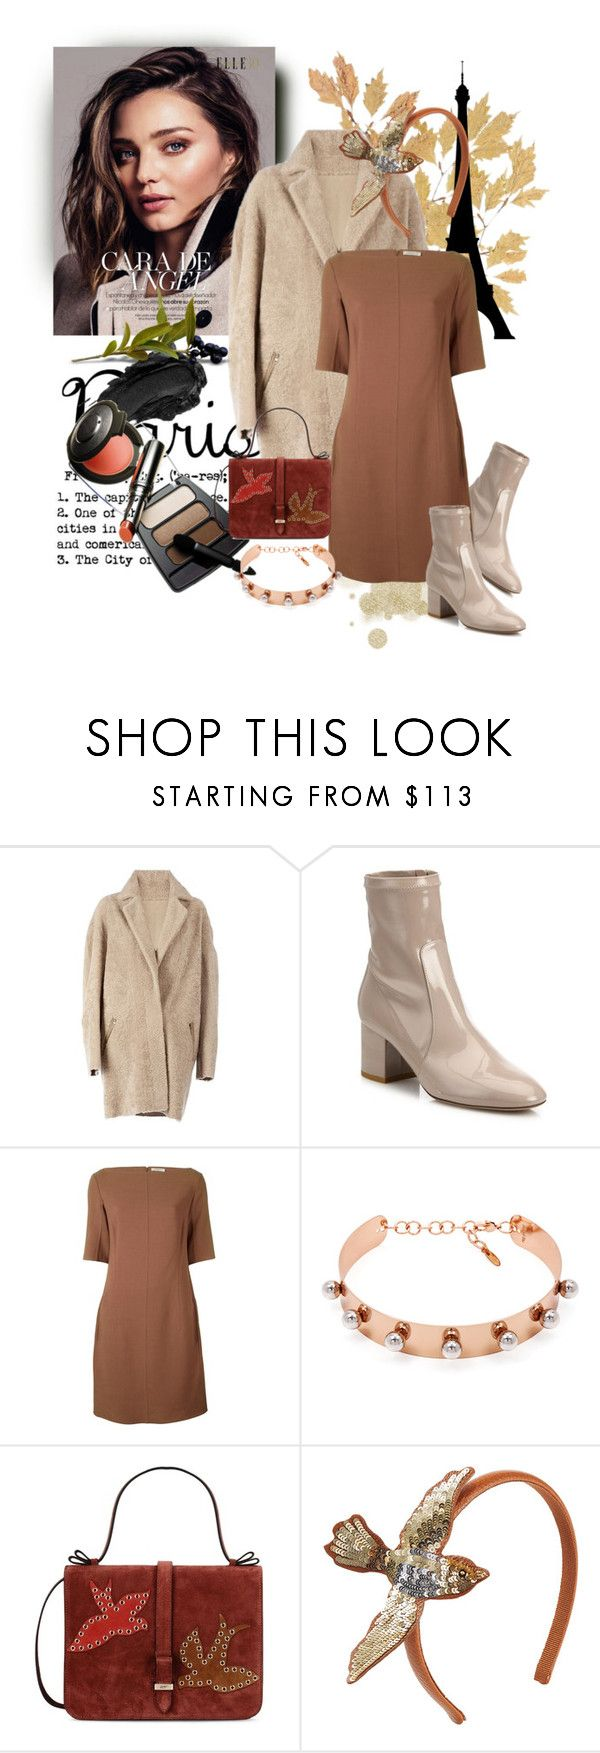 """""""October 30"""" by anny951 ❤ liked on Polyvore featuring Urban Decay, 32 Paradis Sprung Frères, Valentino, Nina Ricci, Joomi Lim and RED Valentino"""